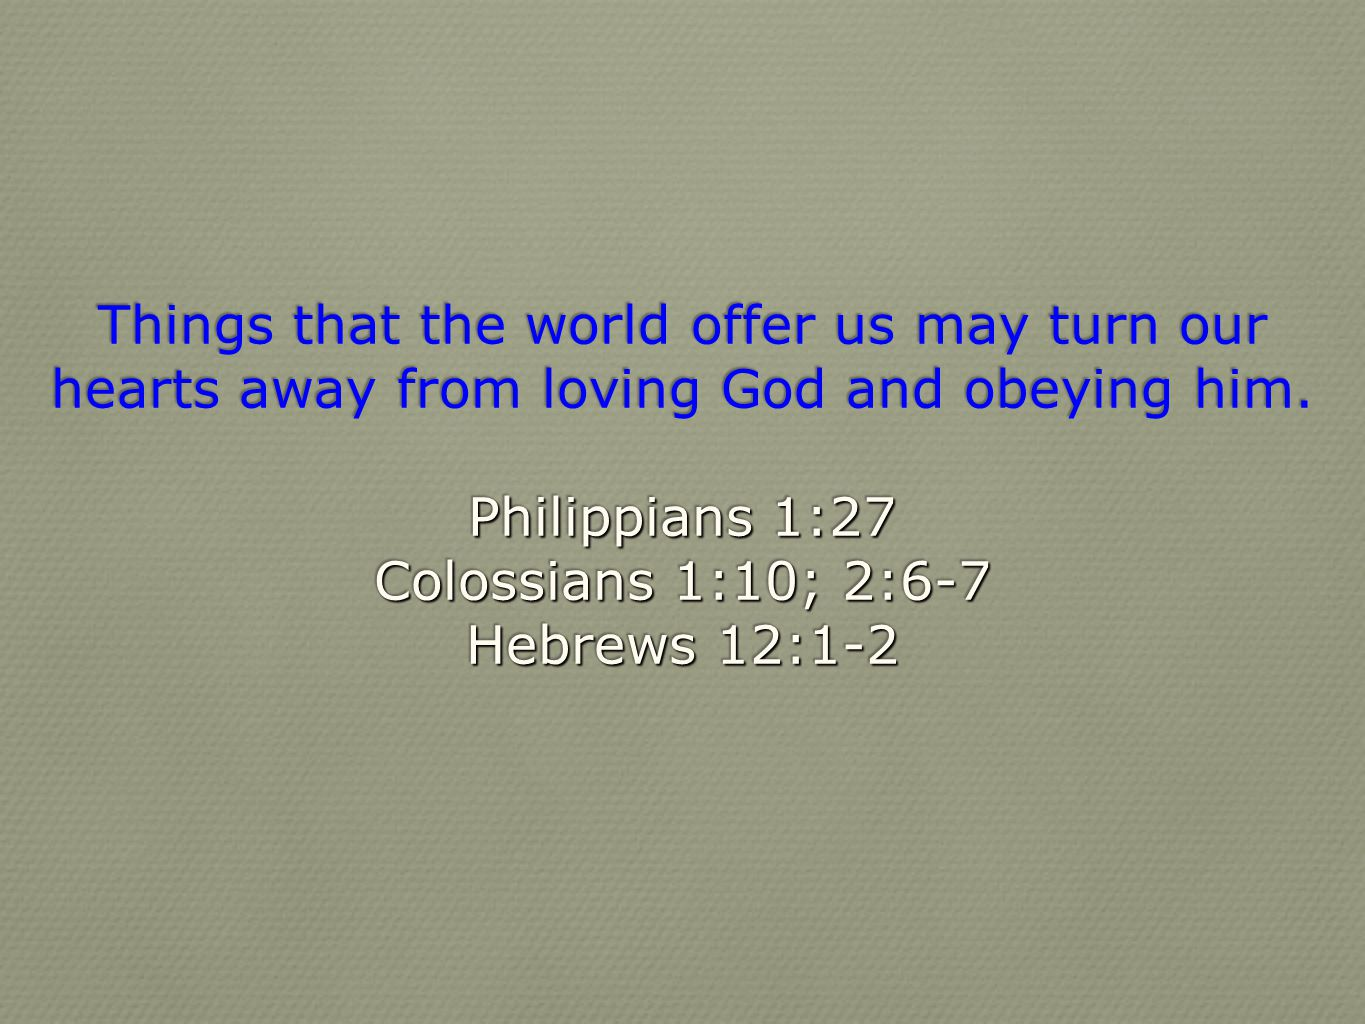 Things that the world offer us may turn our hearts away from loving God and obeying him.